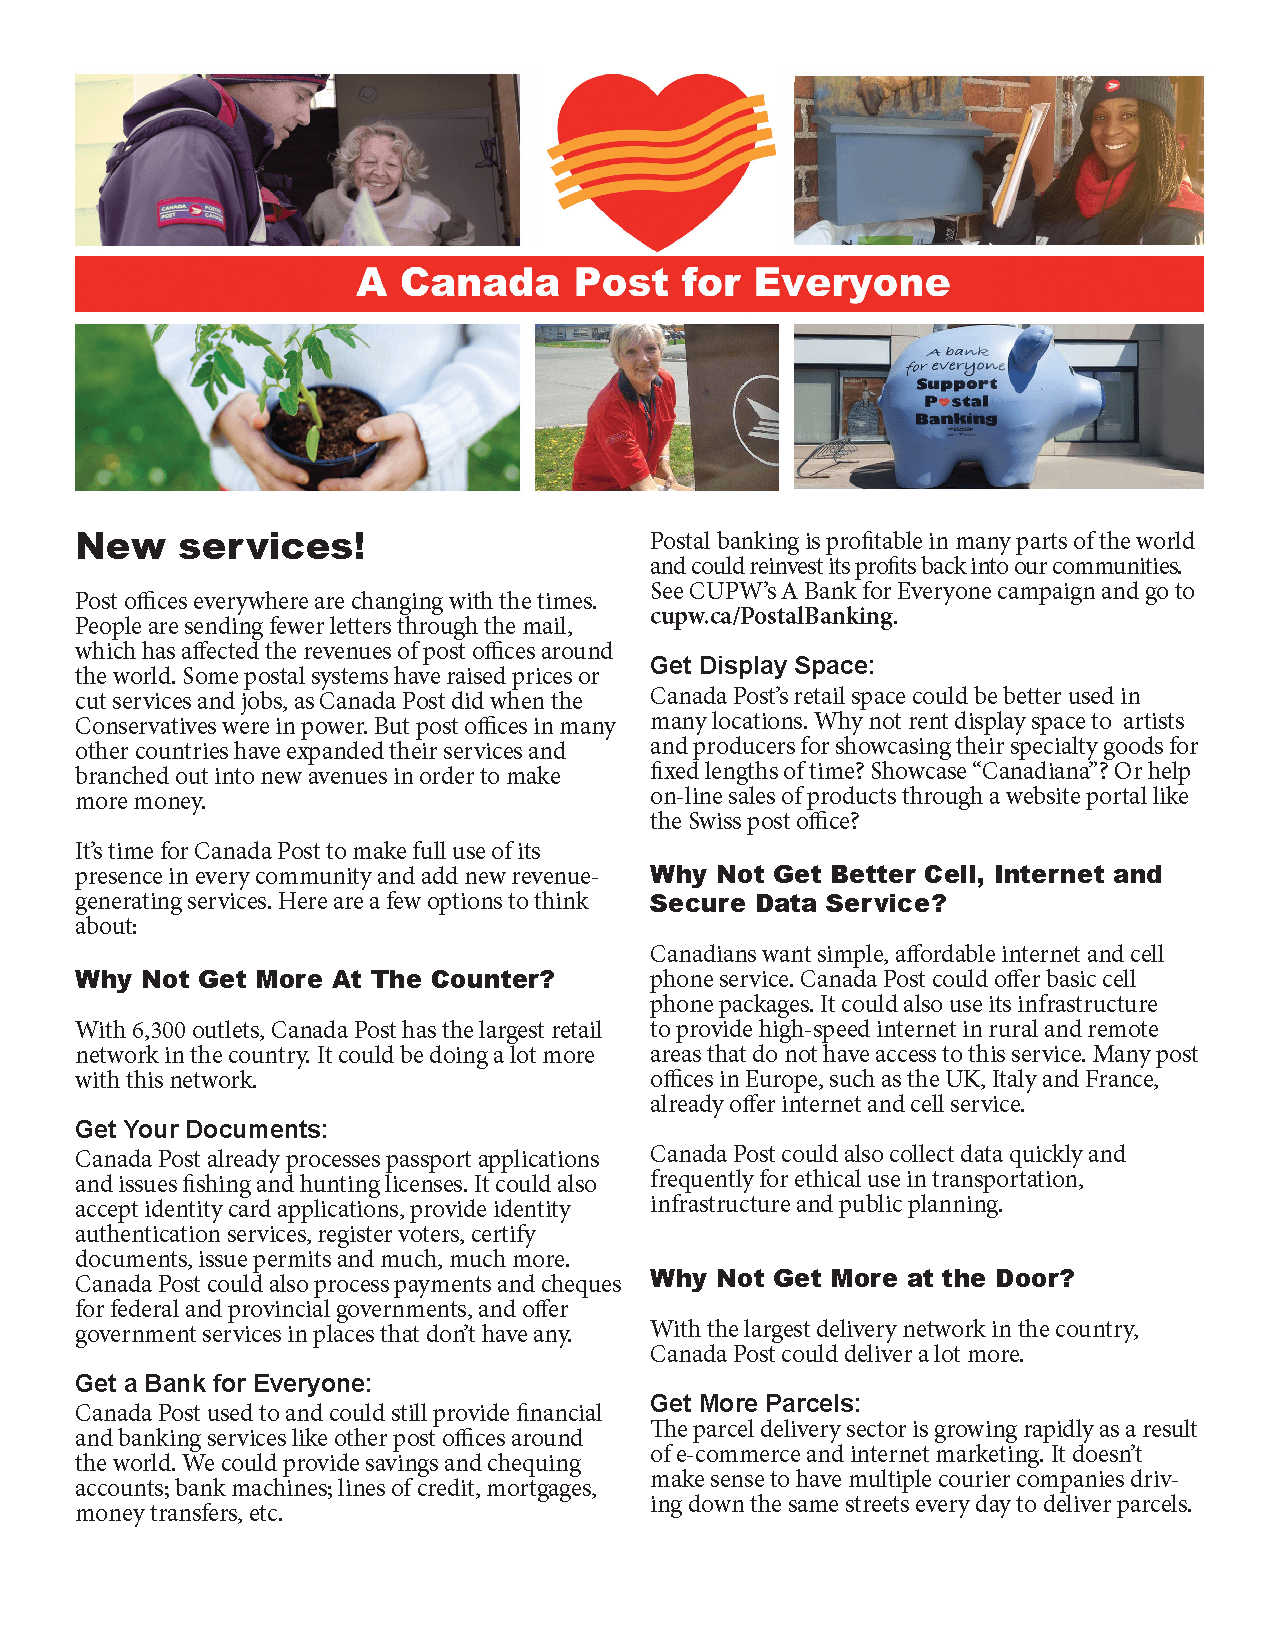 It's time for Canada Post to make full use of its presence in every community and add new revenue-generating services.